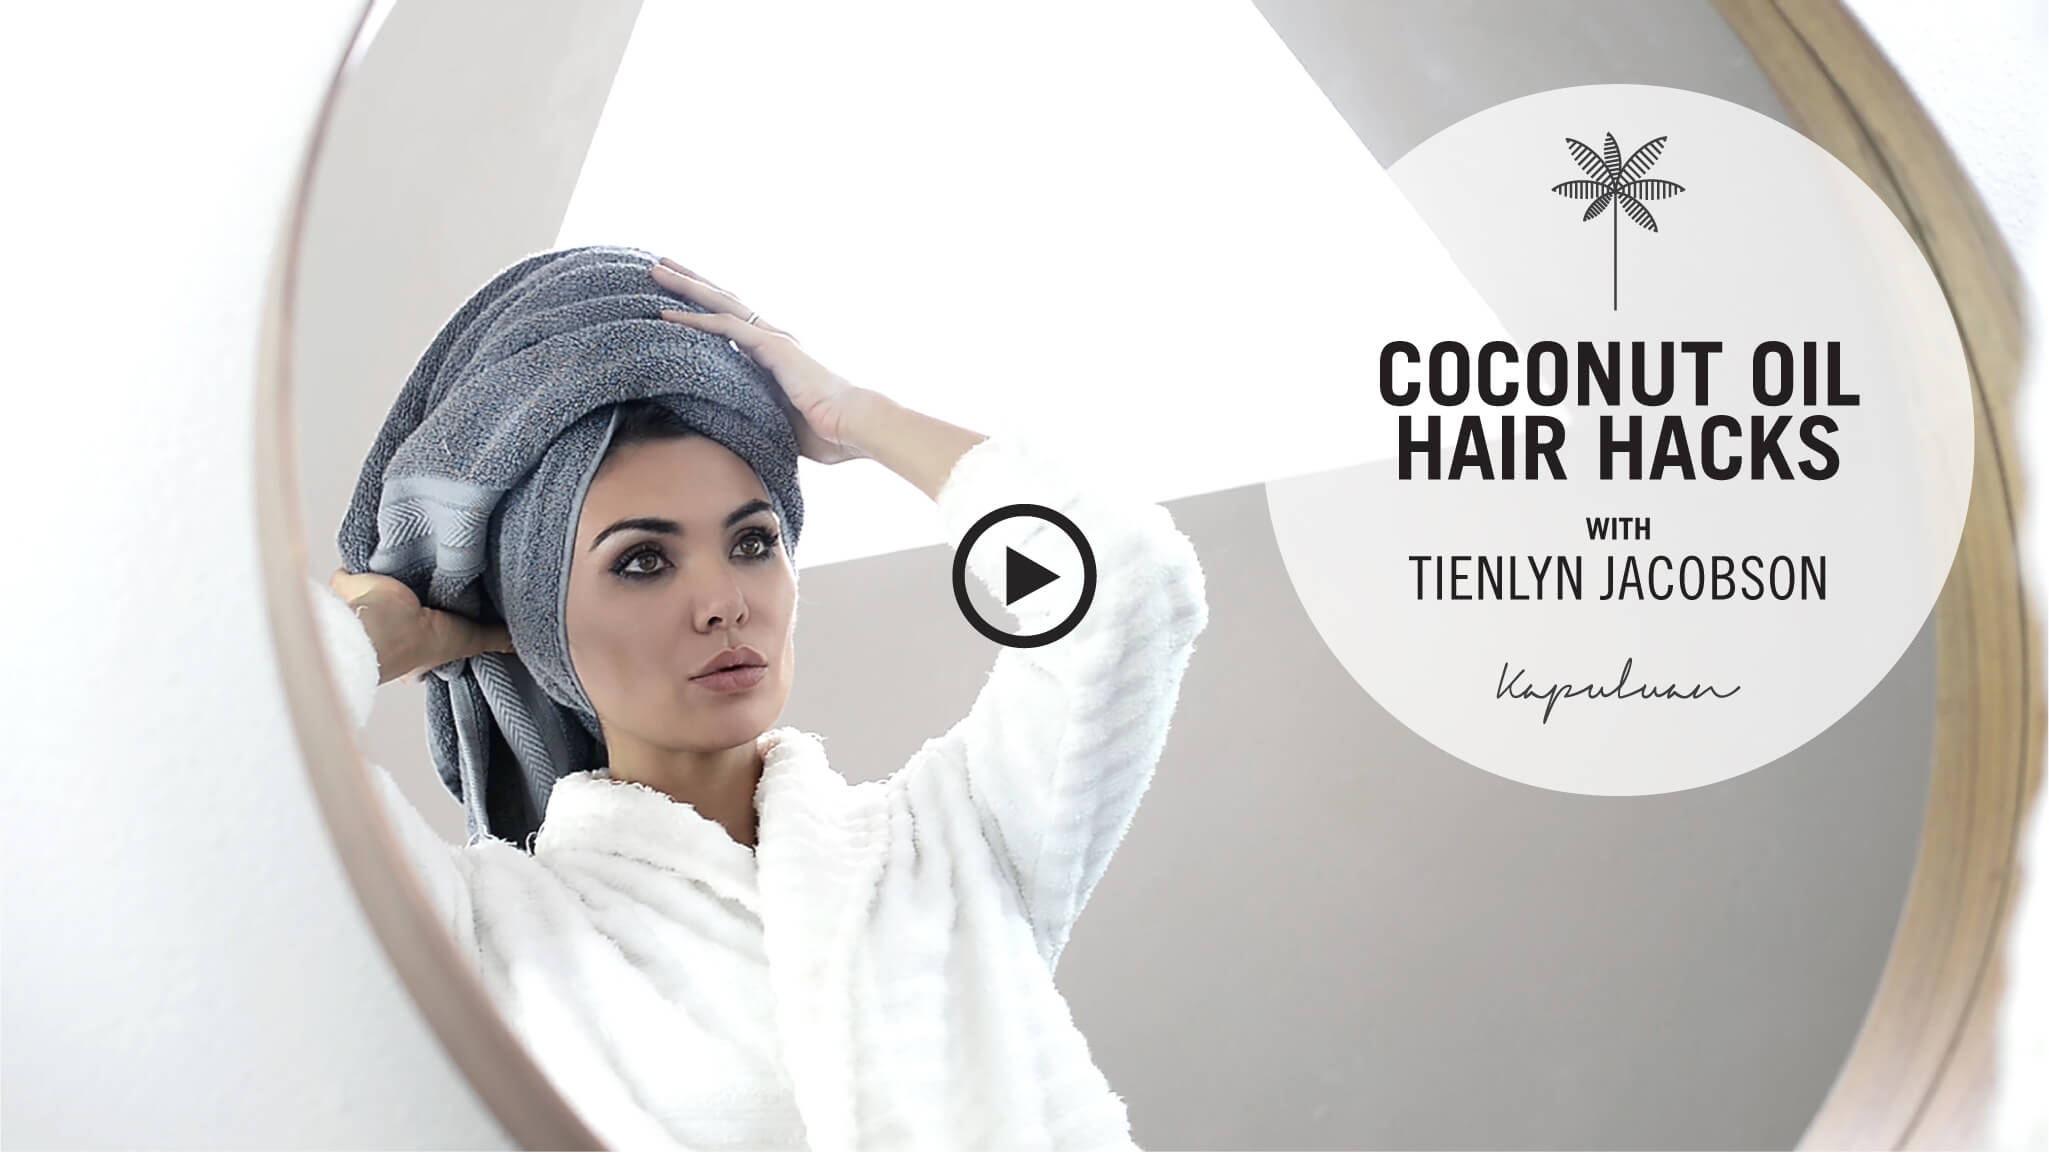 Hair Hacks with Tienlyn Jacobson